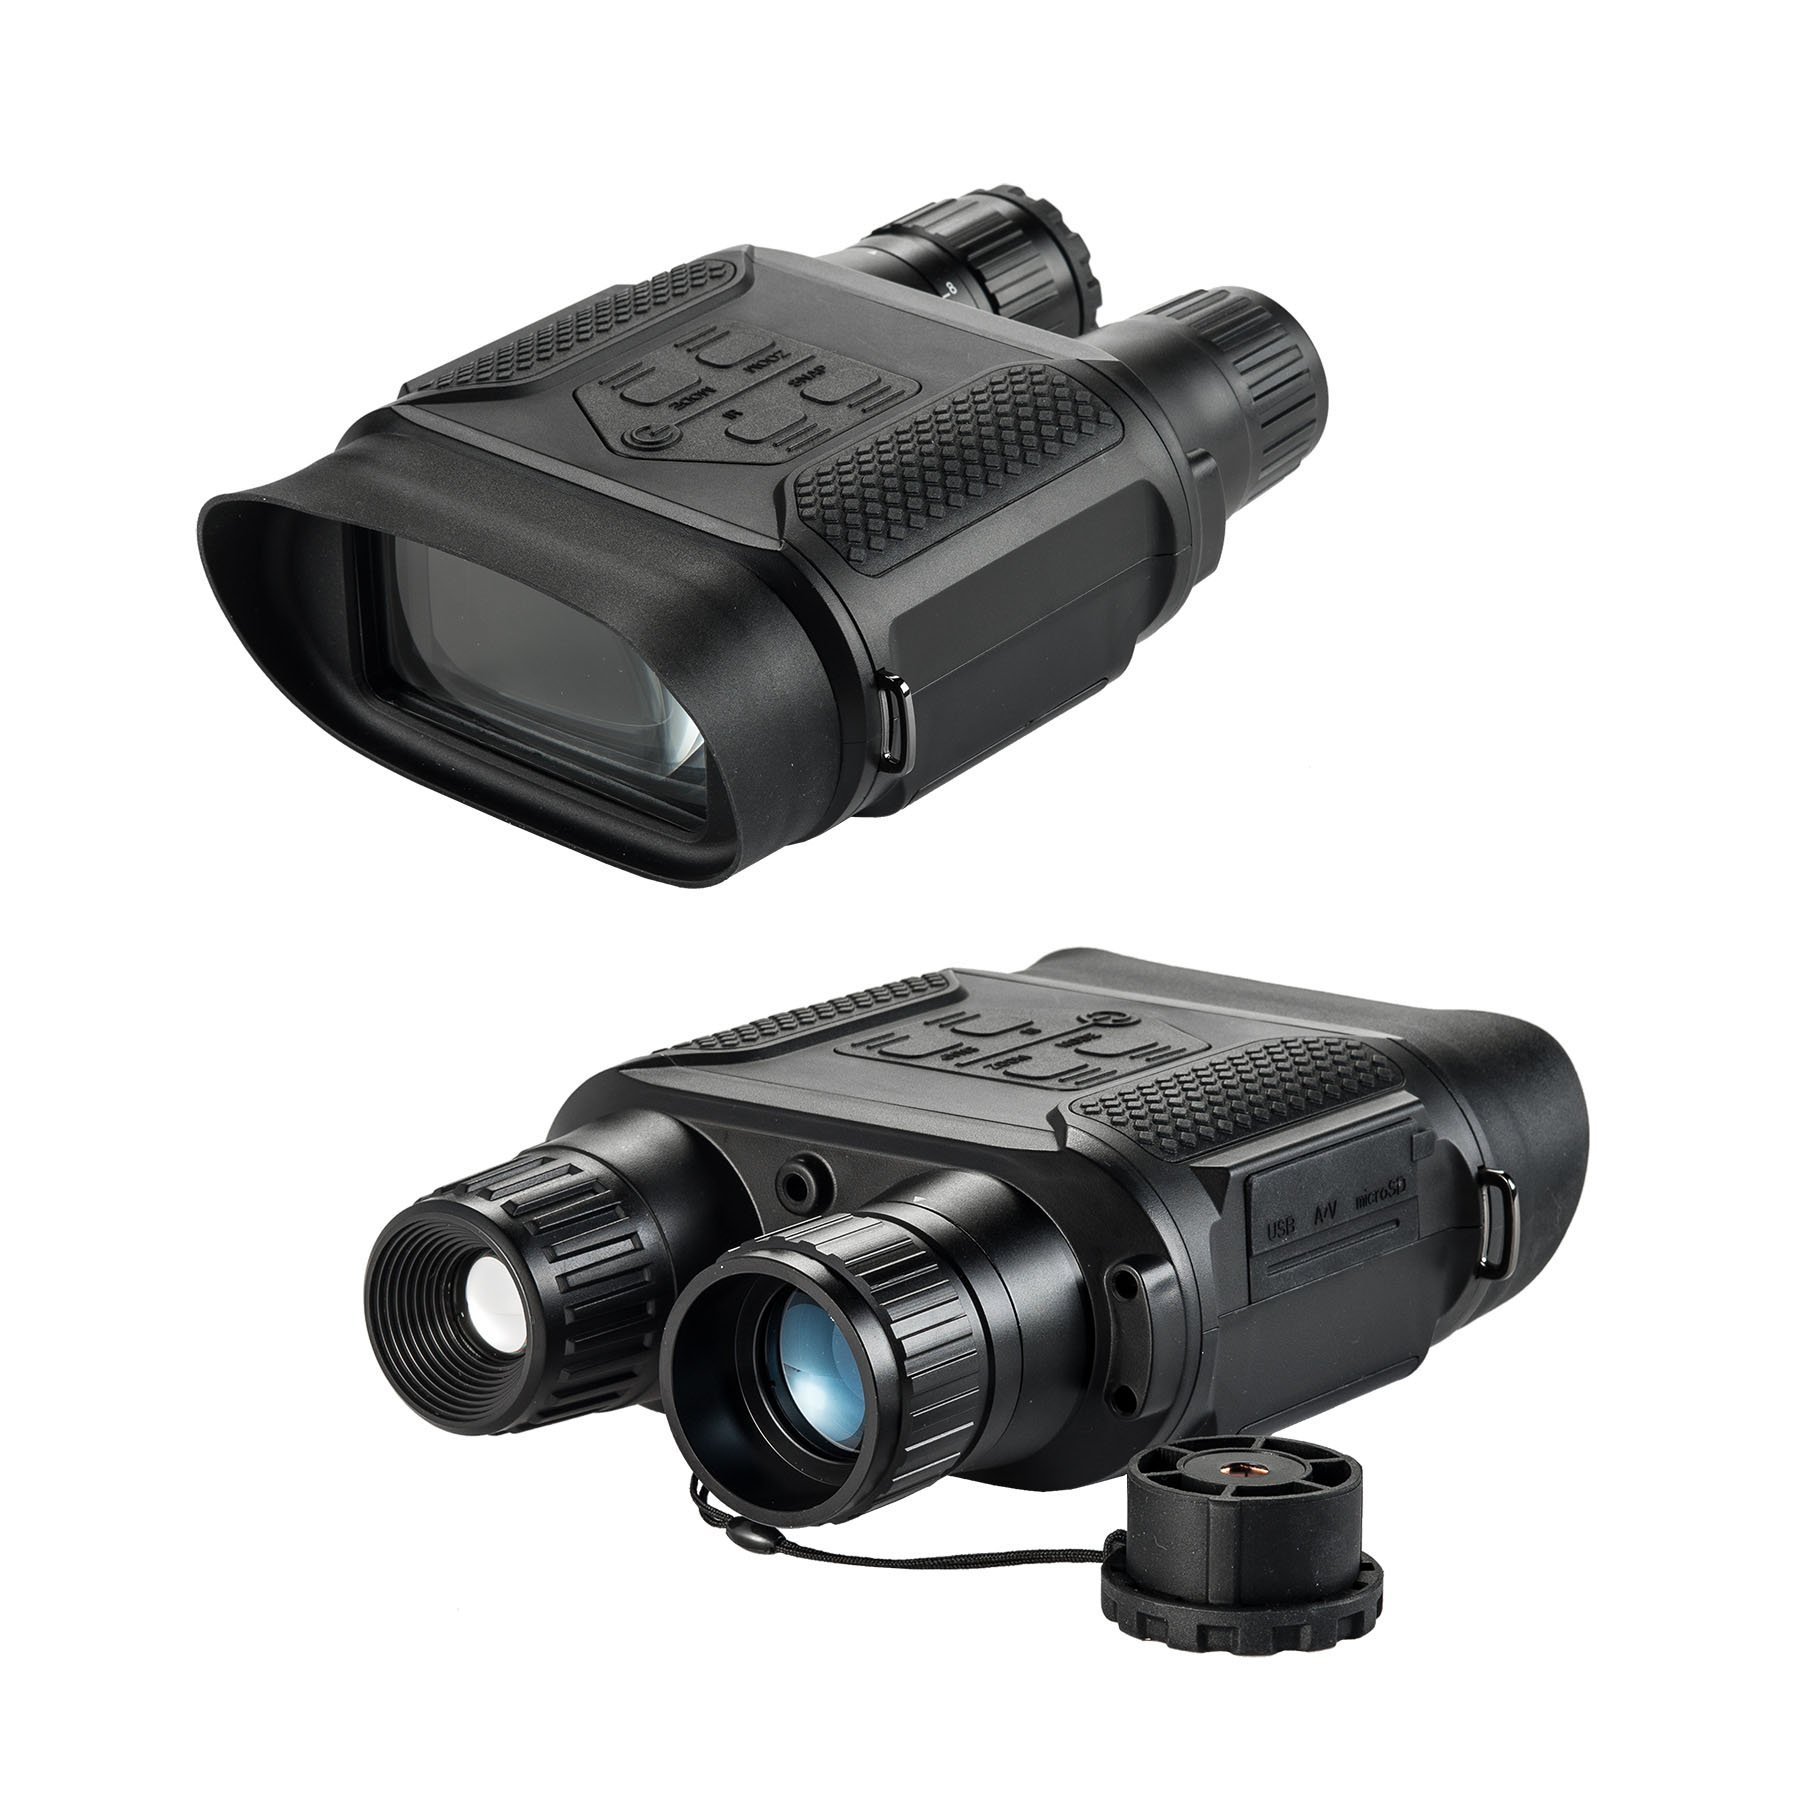 Pinty 7 x 31 Night Vision Binoculars Digital Infrared Night Vision Scope, 640 x 480@30FPS, Photo Camera & Camcorder w/400m/1300ft Viewing Distance, 7x Magnification in the Darkness, 4'' Large Viewing